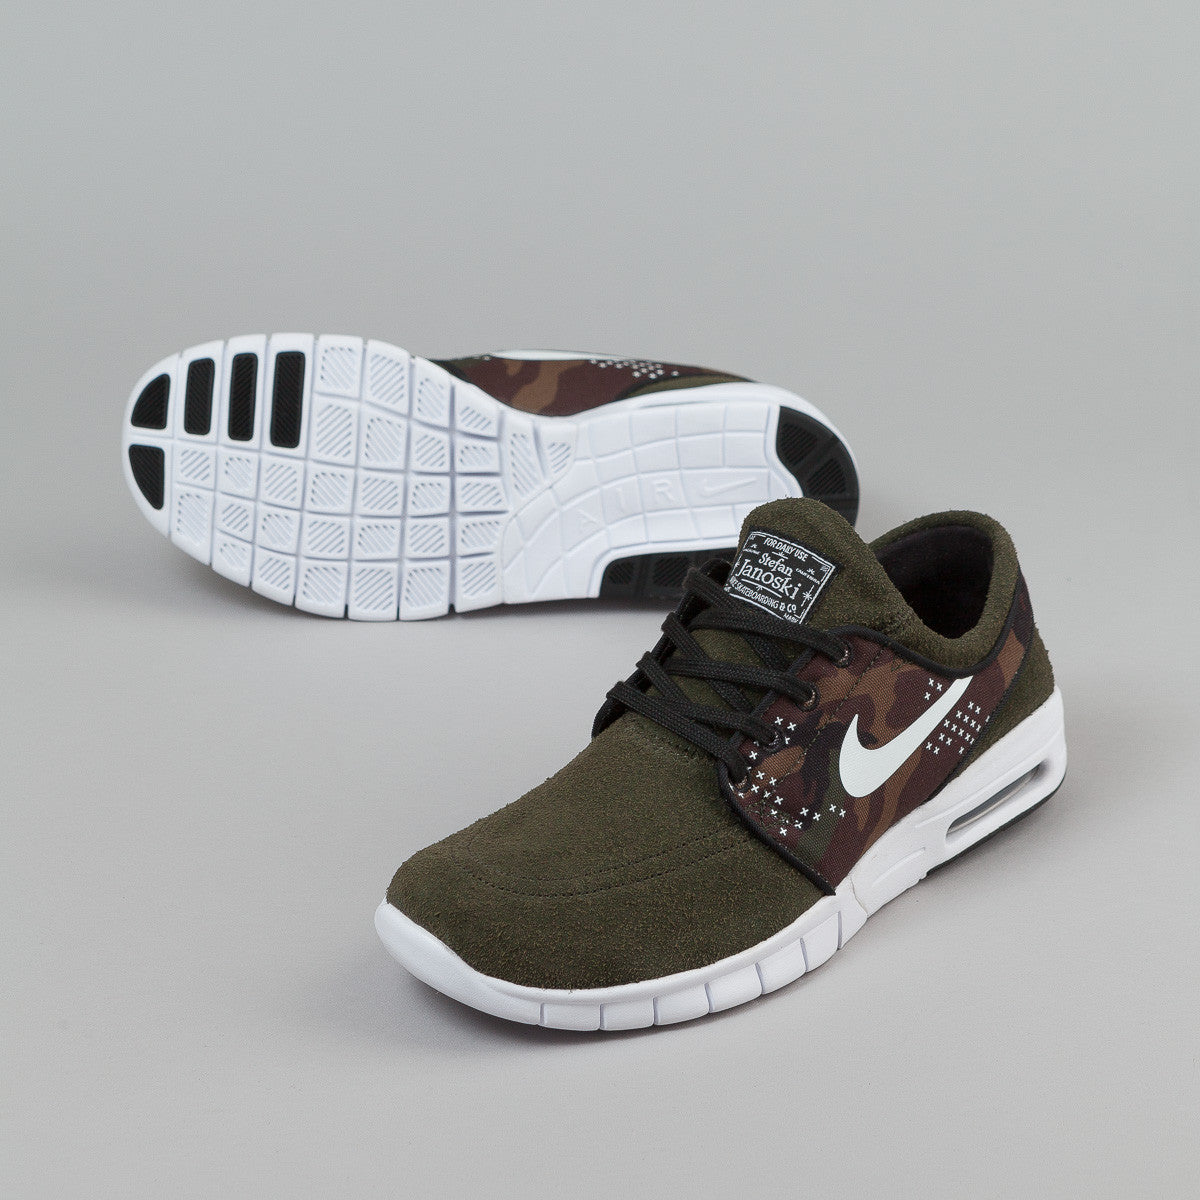 nike sb stefan janoski max l sequoia white black flatspot. Black Bedroom Furniture Sets. Home Design Ideas